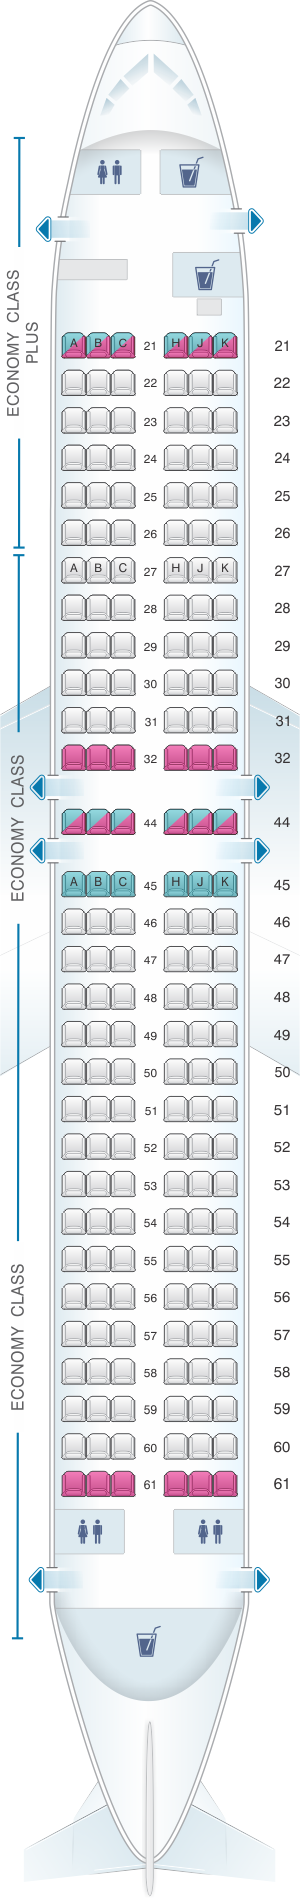 Seat map for El Al Israel Airlines Boeing B737 800 180pax